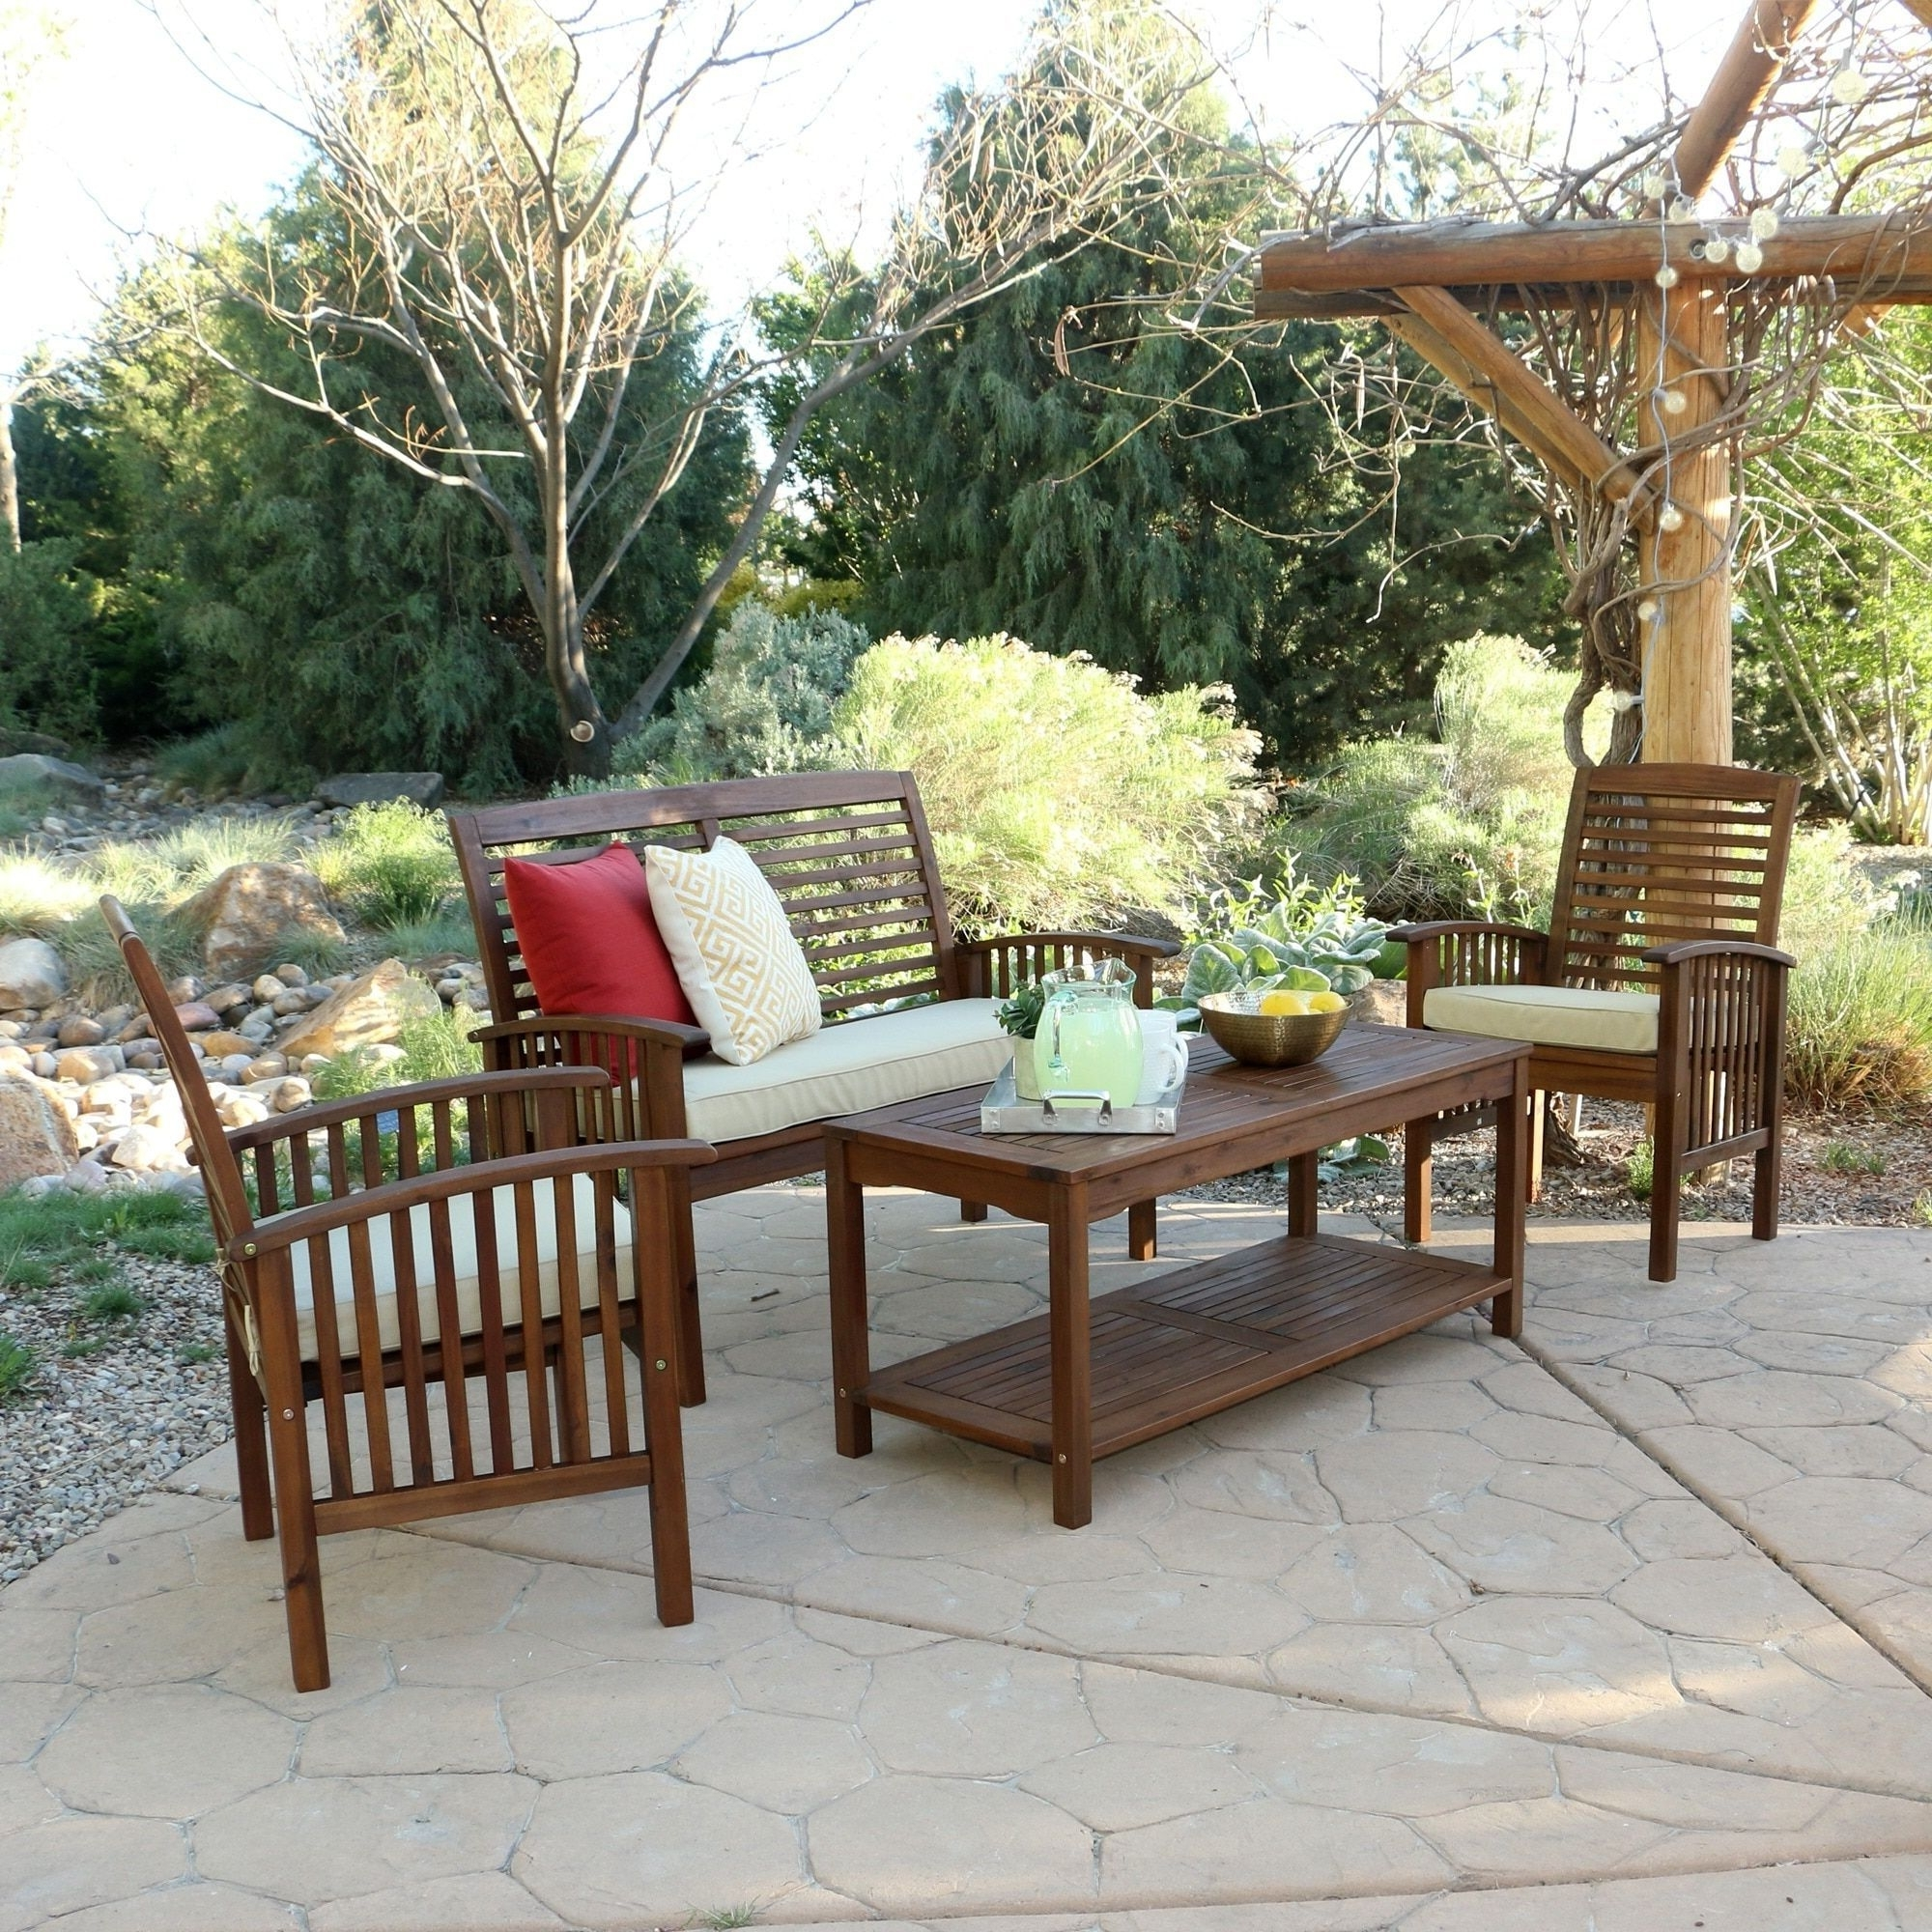 Wood Patio Furniture Conversation Sets In Most Up To Date 4 Piece Acacia Wood Patio Conversation Set, Brown, Size 4 Piece Sets (View 11 of 15)